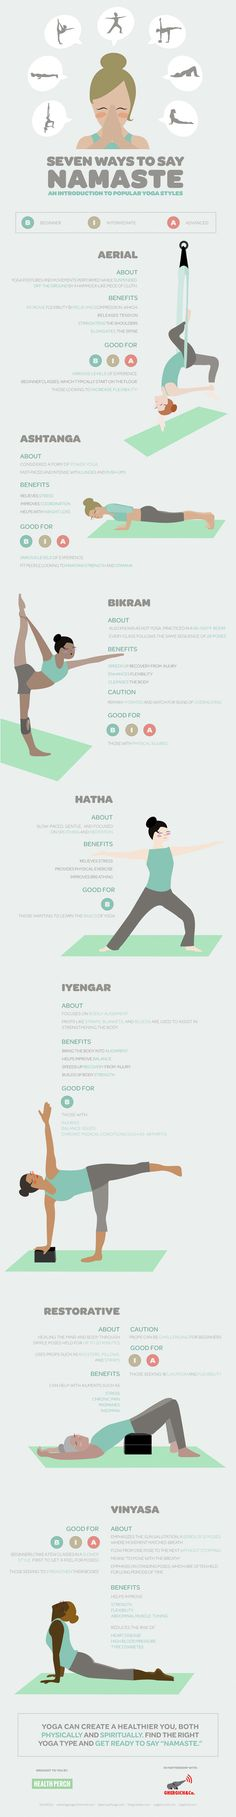 Seven Ways to Say Namaste: An Introduction to Popular Yoga Styles   #infographic #Yoga Health